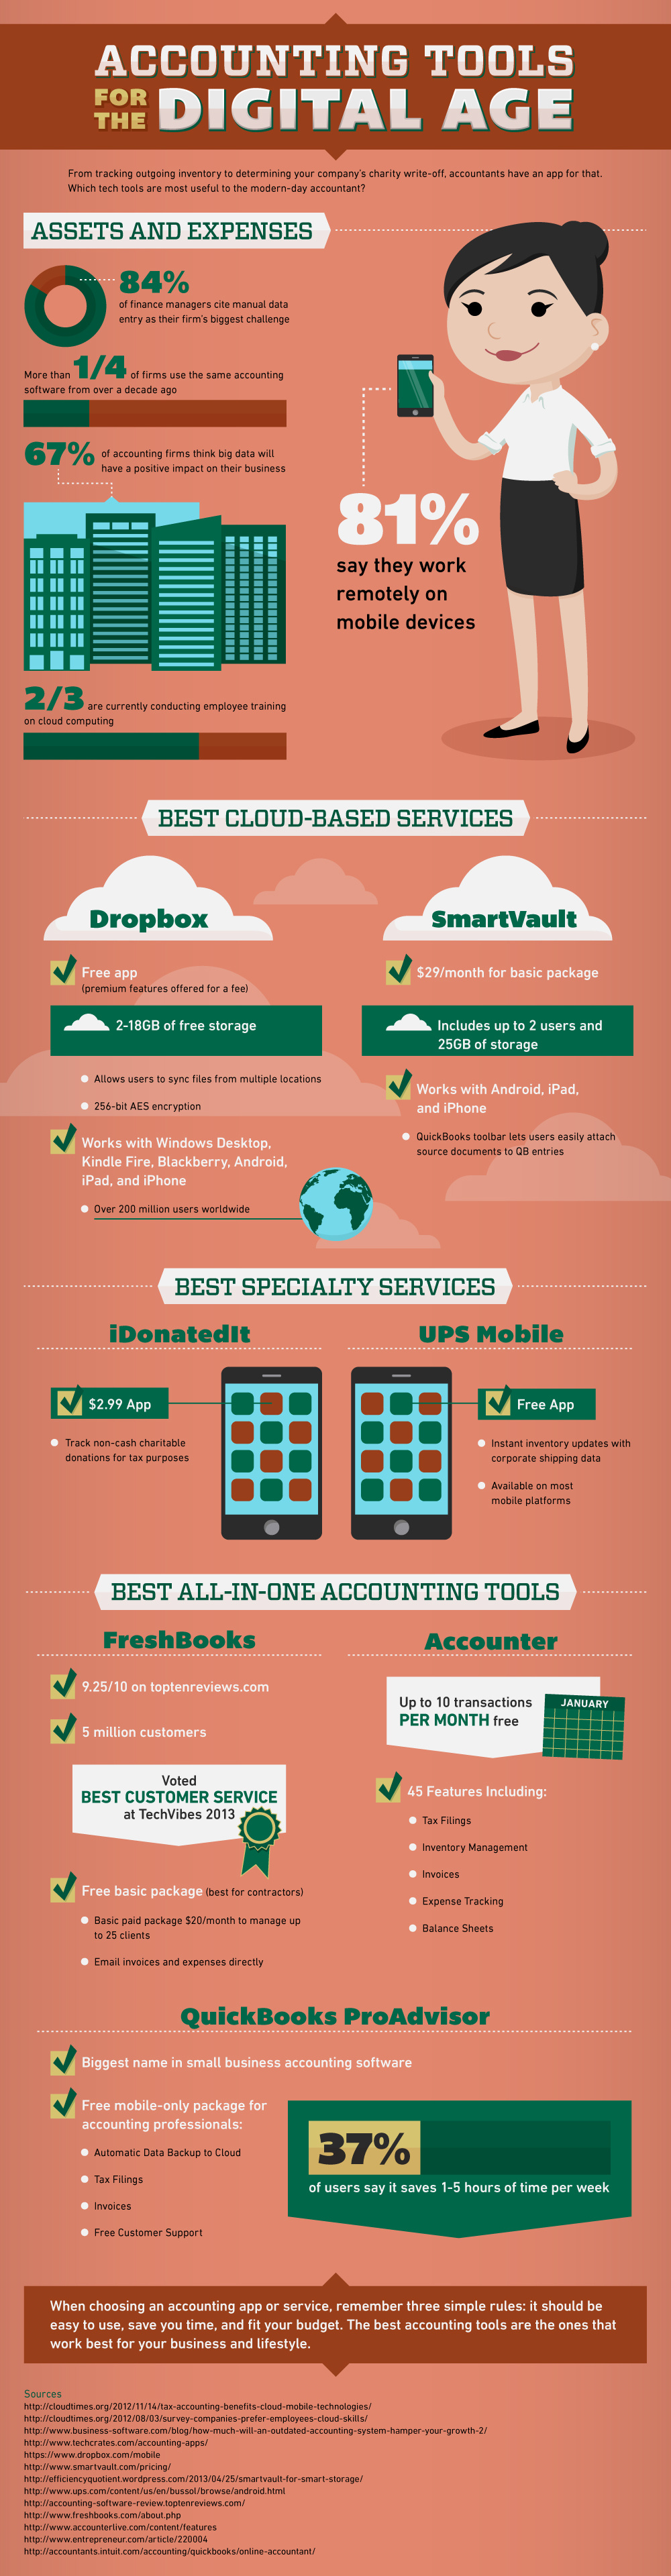 Accounting Tools For The Digital Age [INFOGRAPHIC] - Image 1